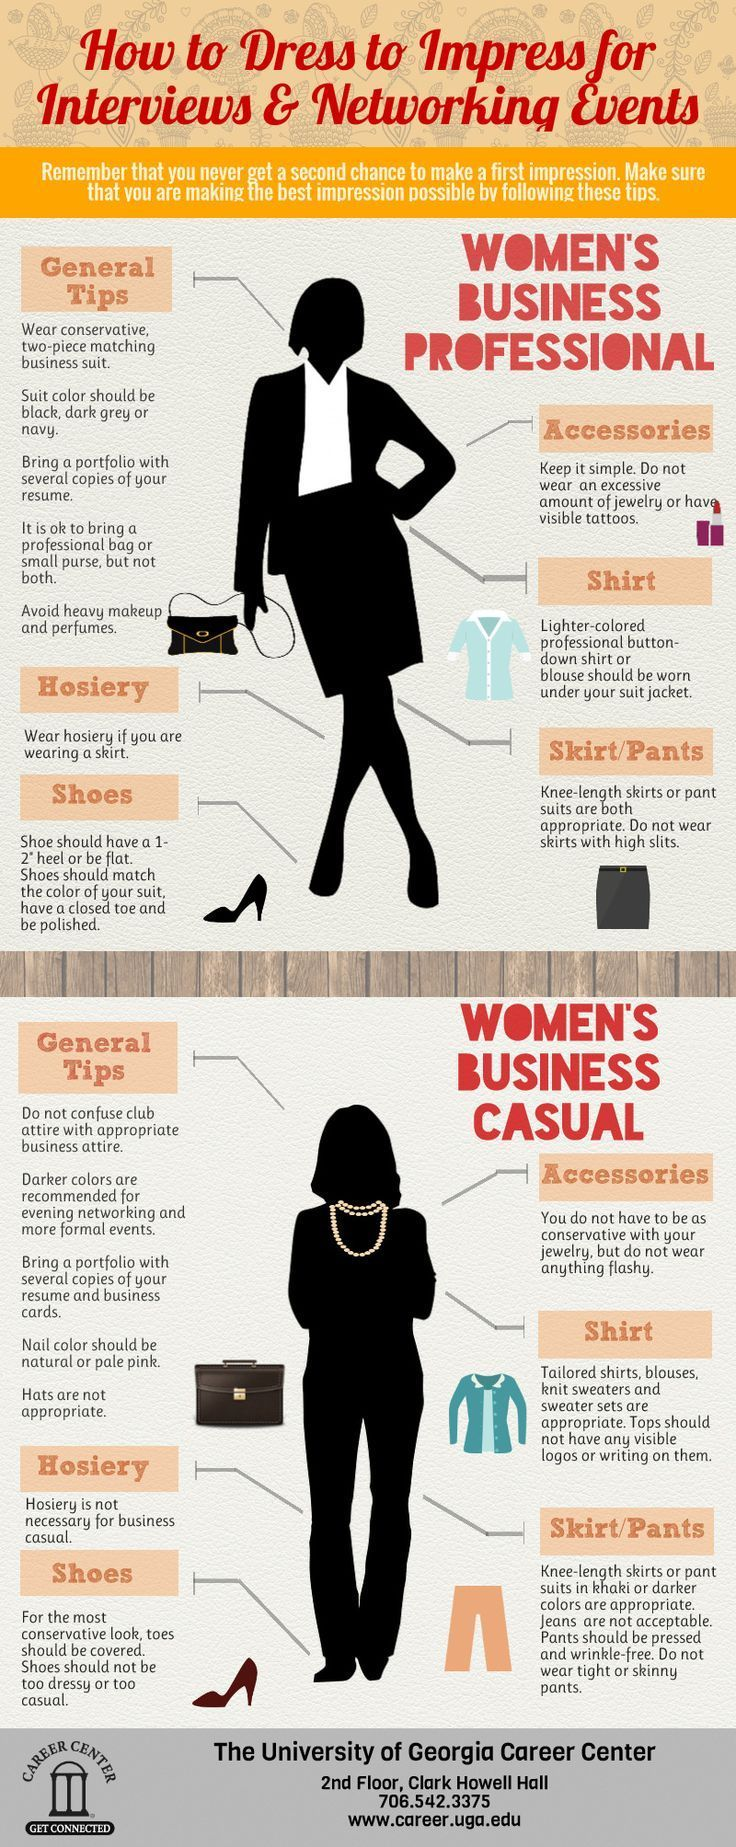 best ideas about interview clothes office attire this is a good guide for women to dress by for an interview or any event when they are not sure what to wear professional attire vs